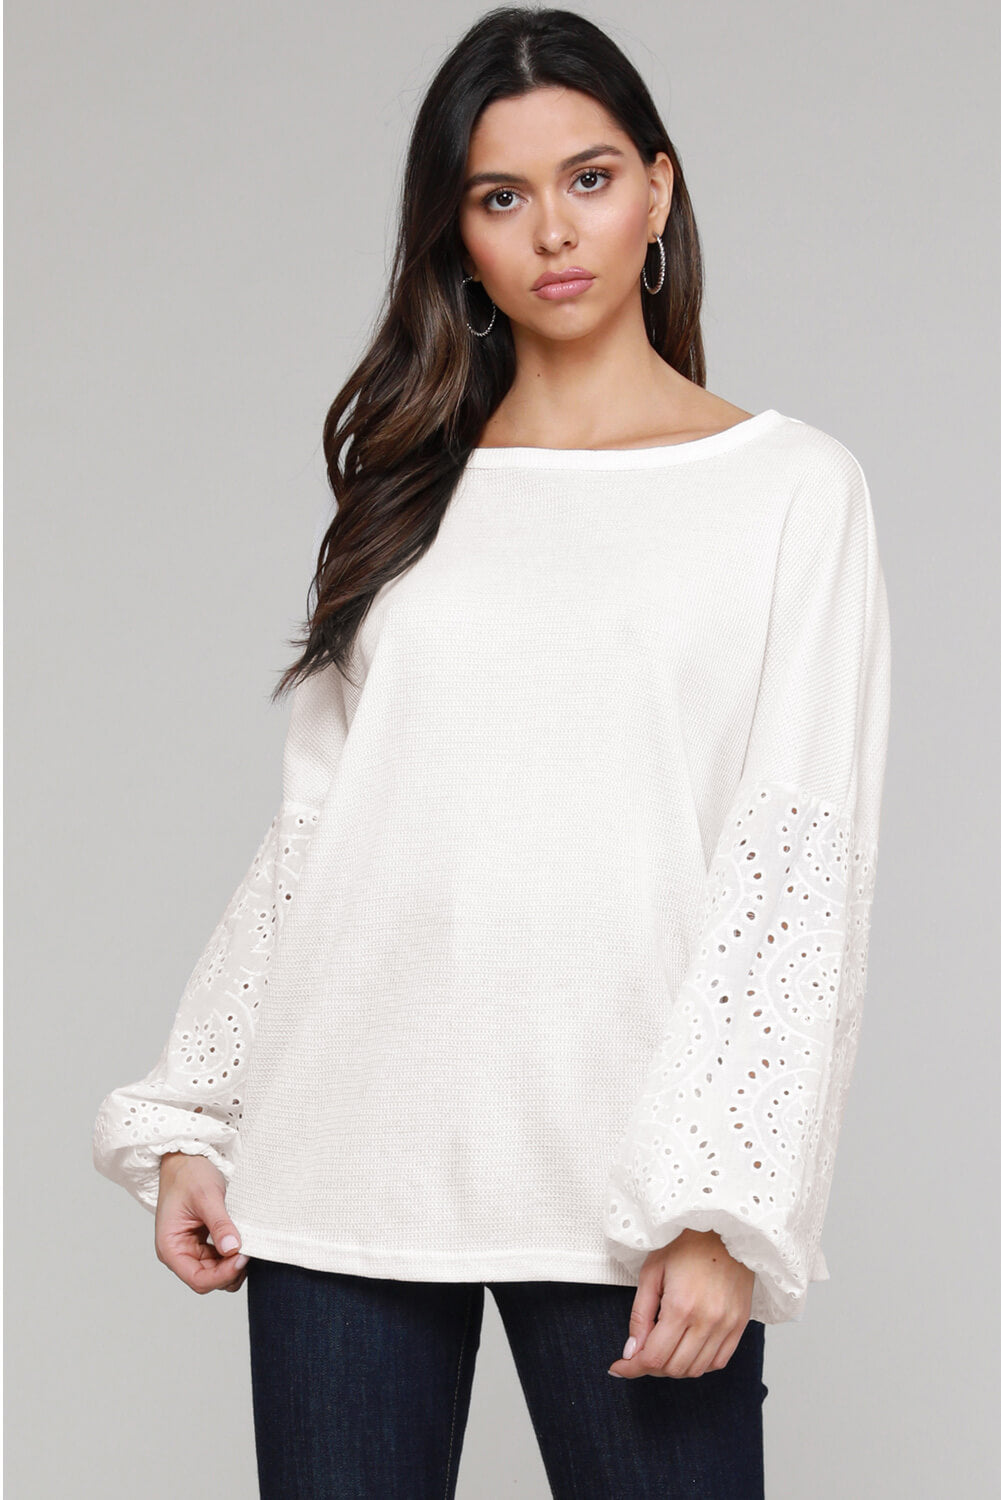 White Loose Casual Puffy Sleeve Top